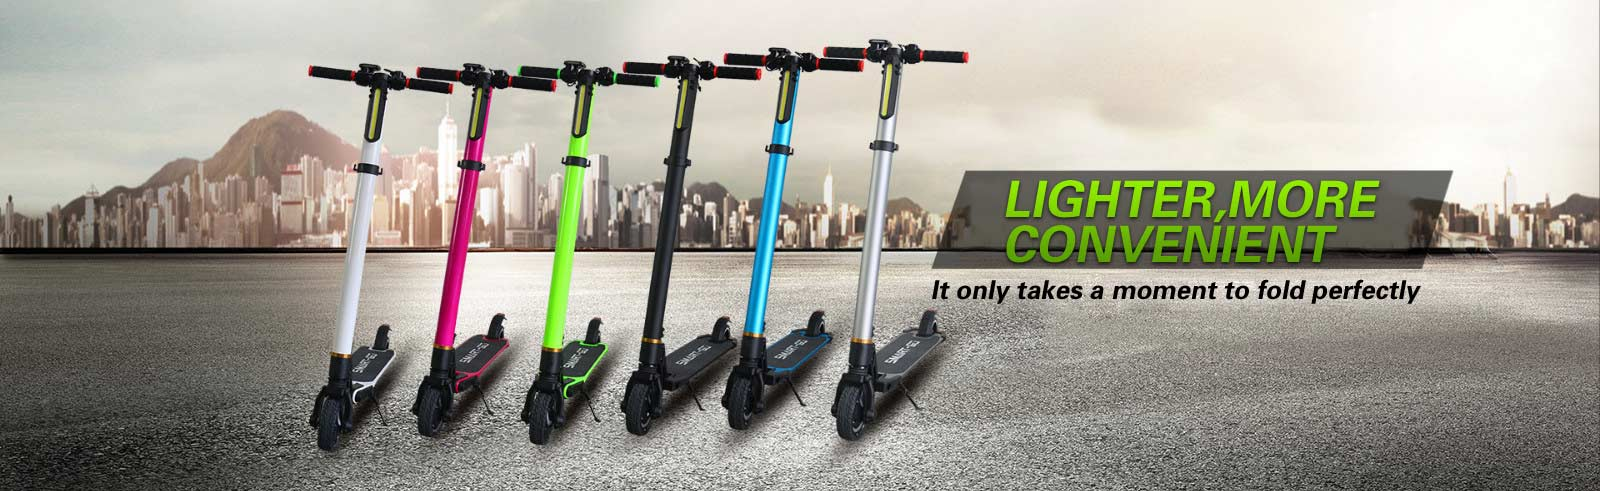 Carbon Fiber Smart Electric Scooter